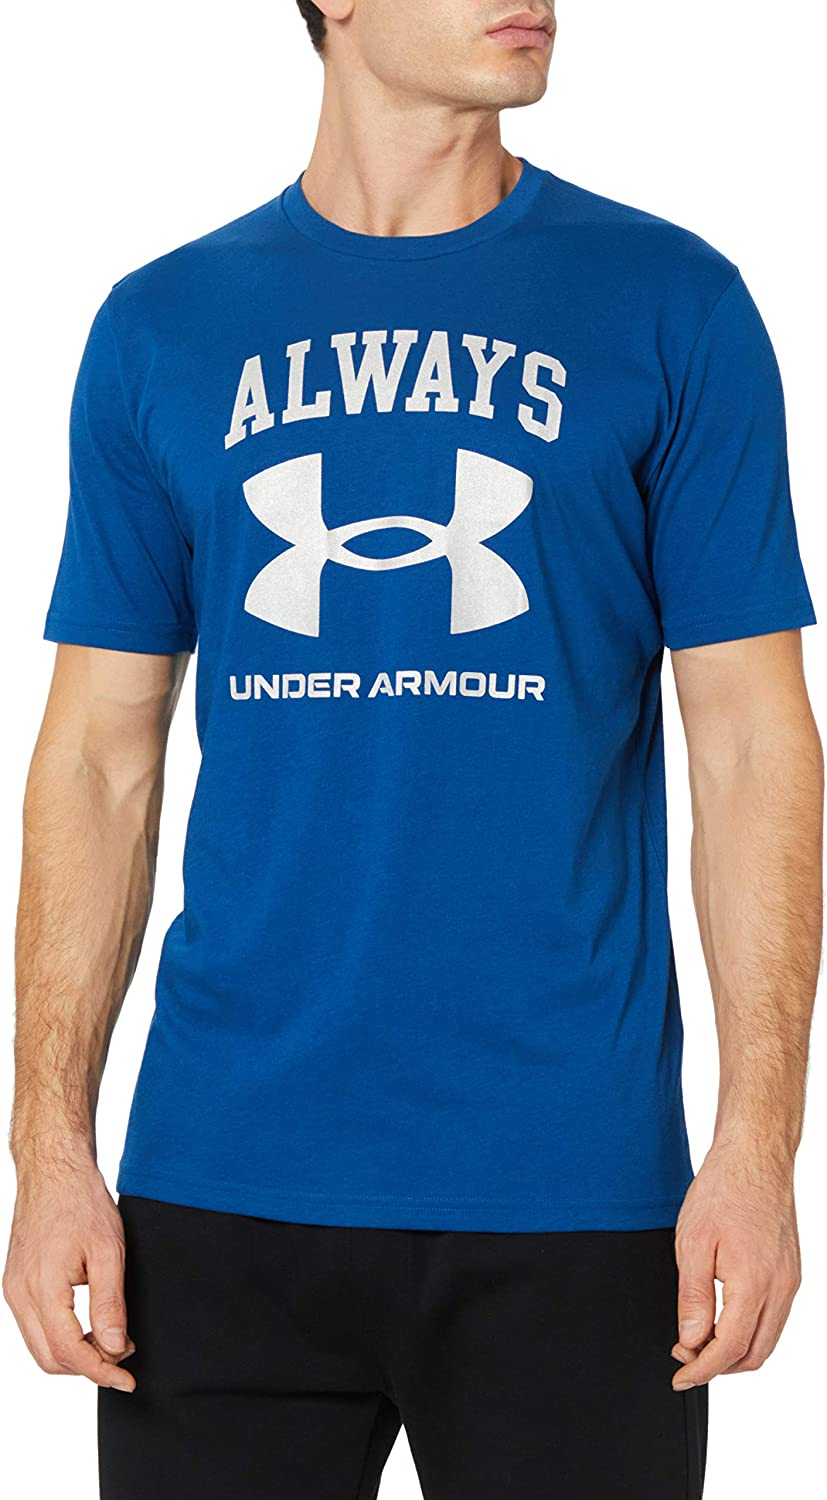 Under Armour Always T-Shirt - AW20 - Small - Blue